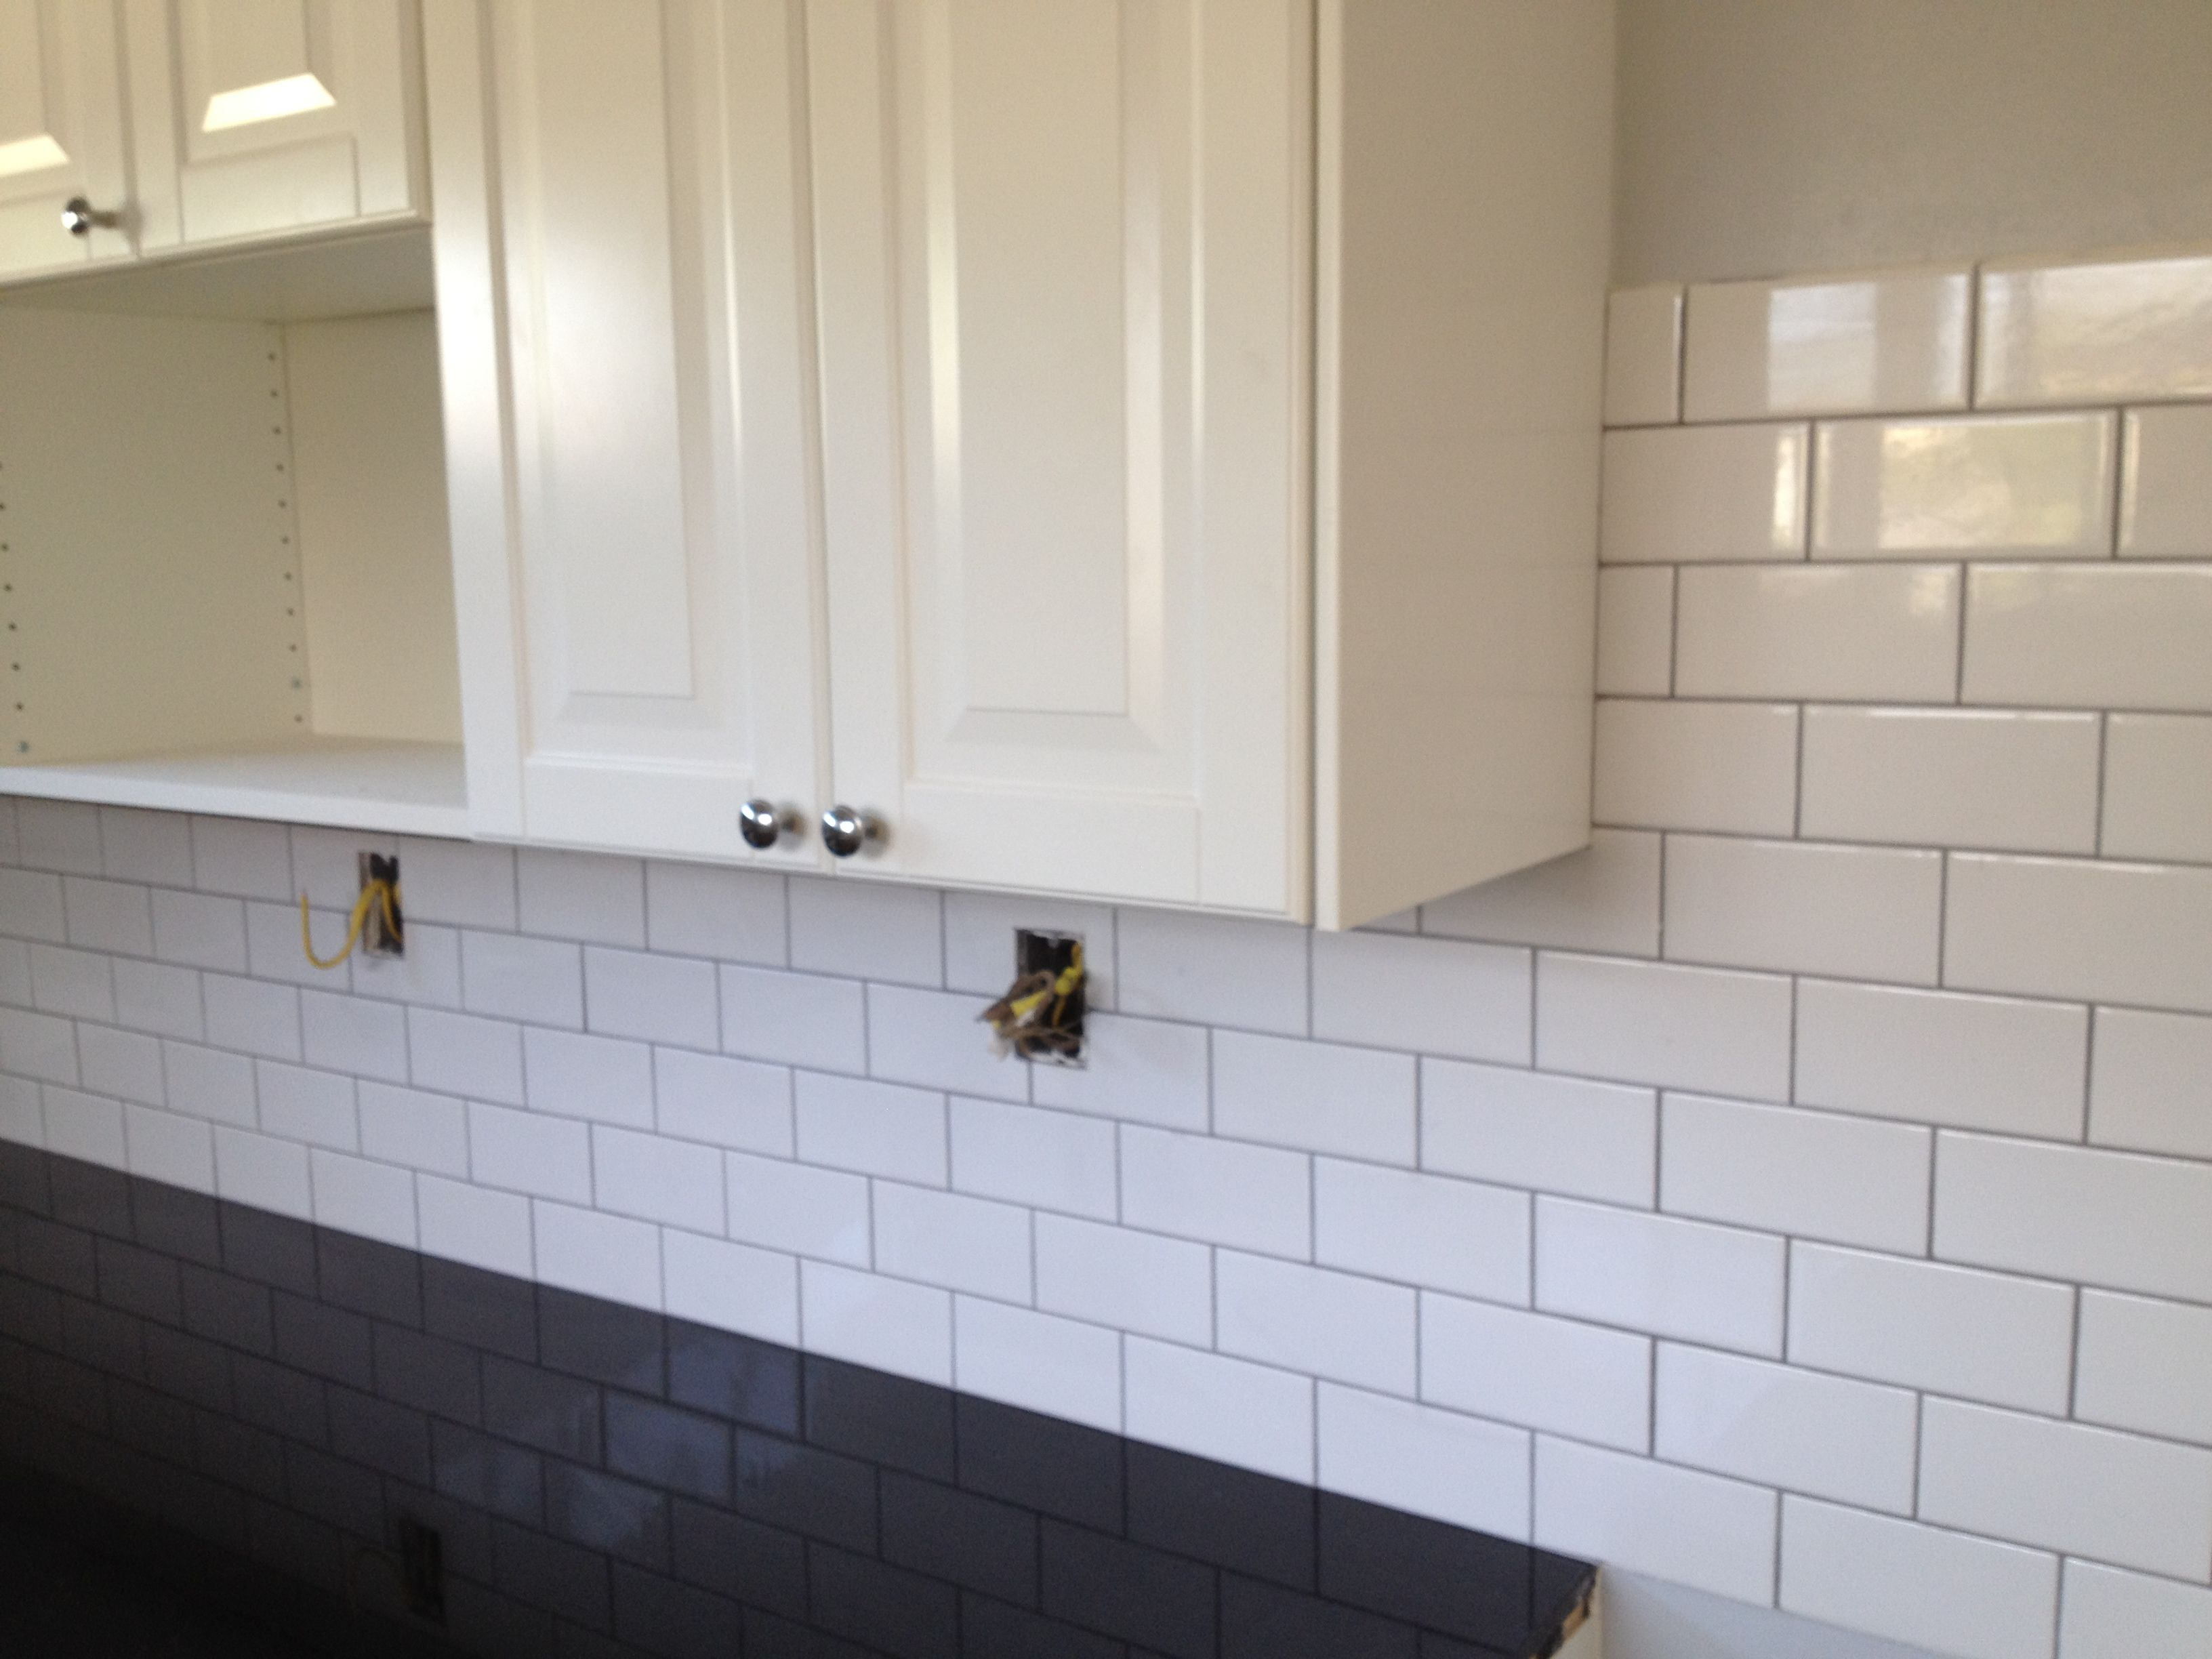 Gray tile gray grout google search kitchen ideas pinterest gray tile gray grout google search gray tileswhite subway dailygadgetfo Choice Image